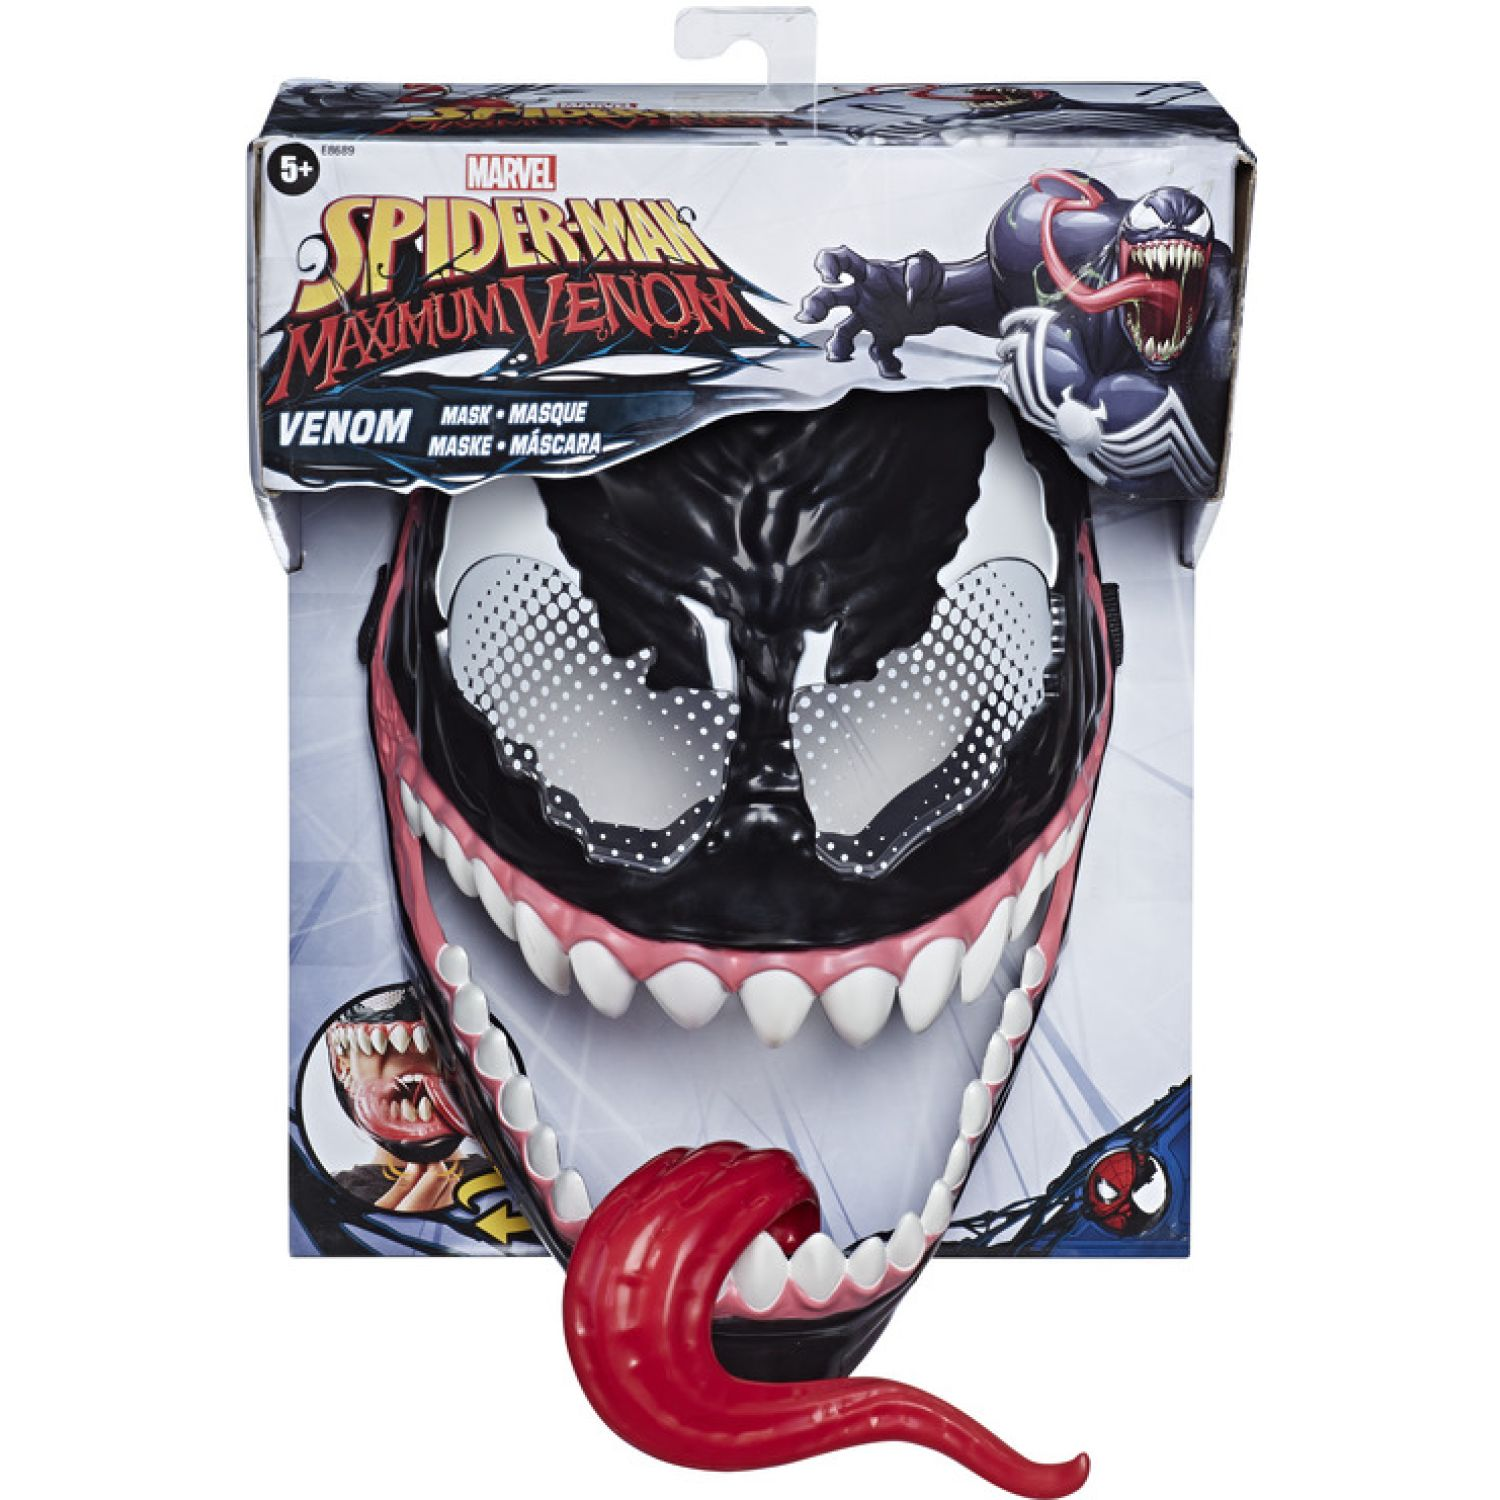 SPIDER-MAN Spd Maximum Venom Mask Varios Antifaces